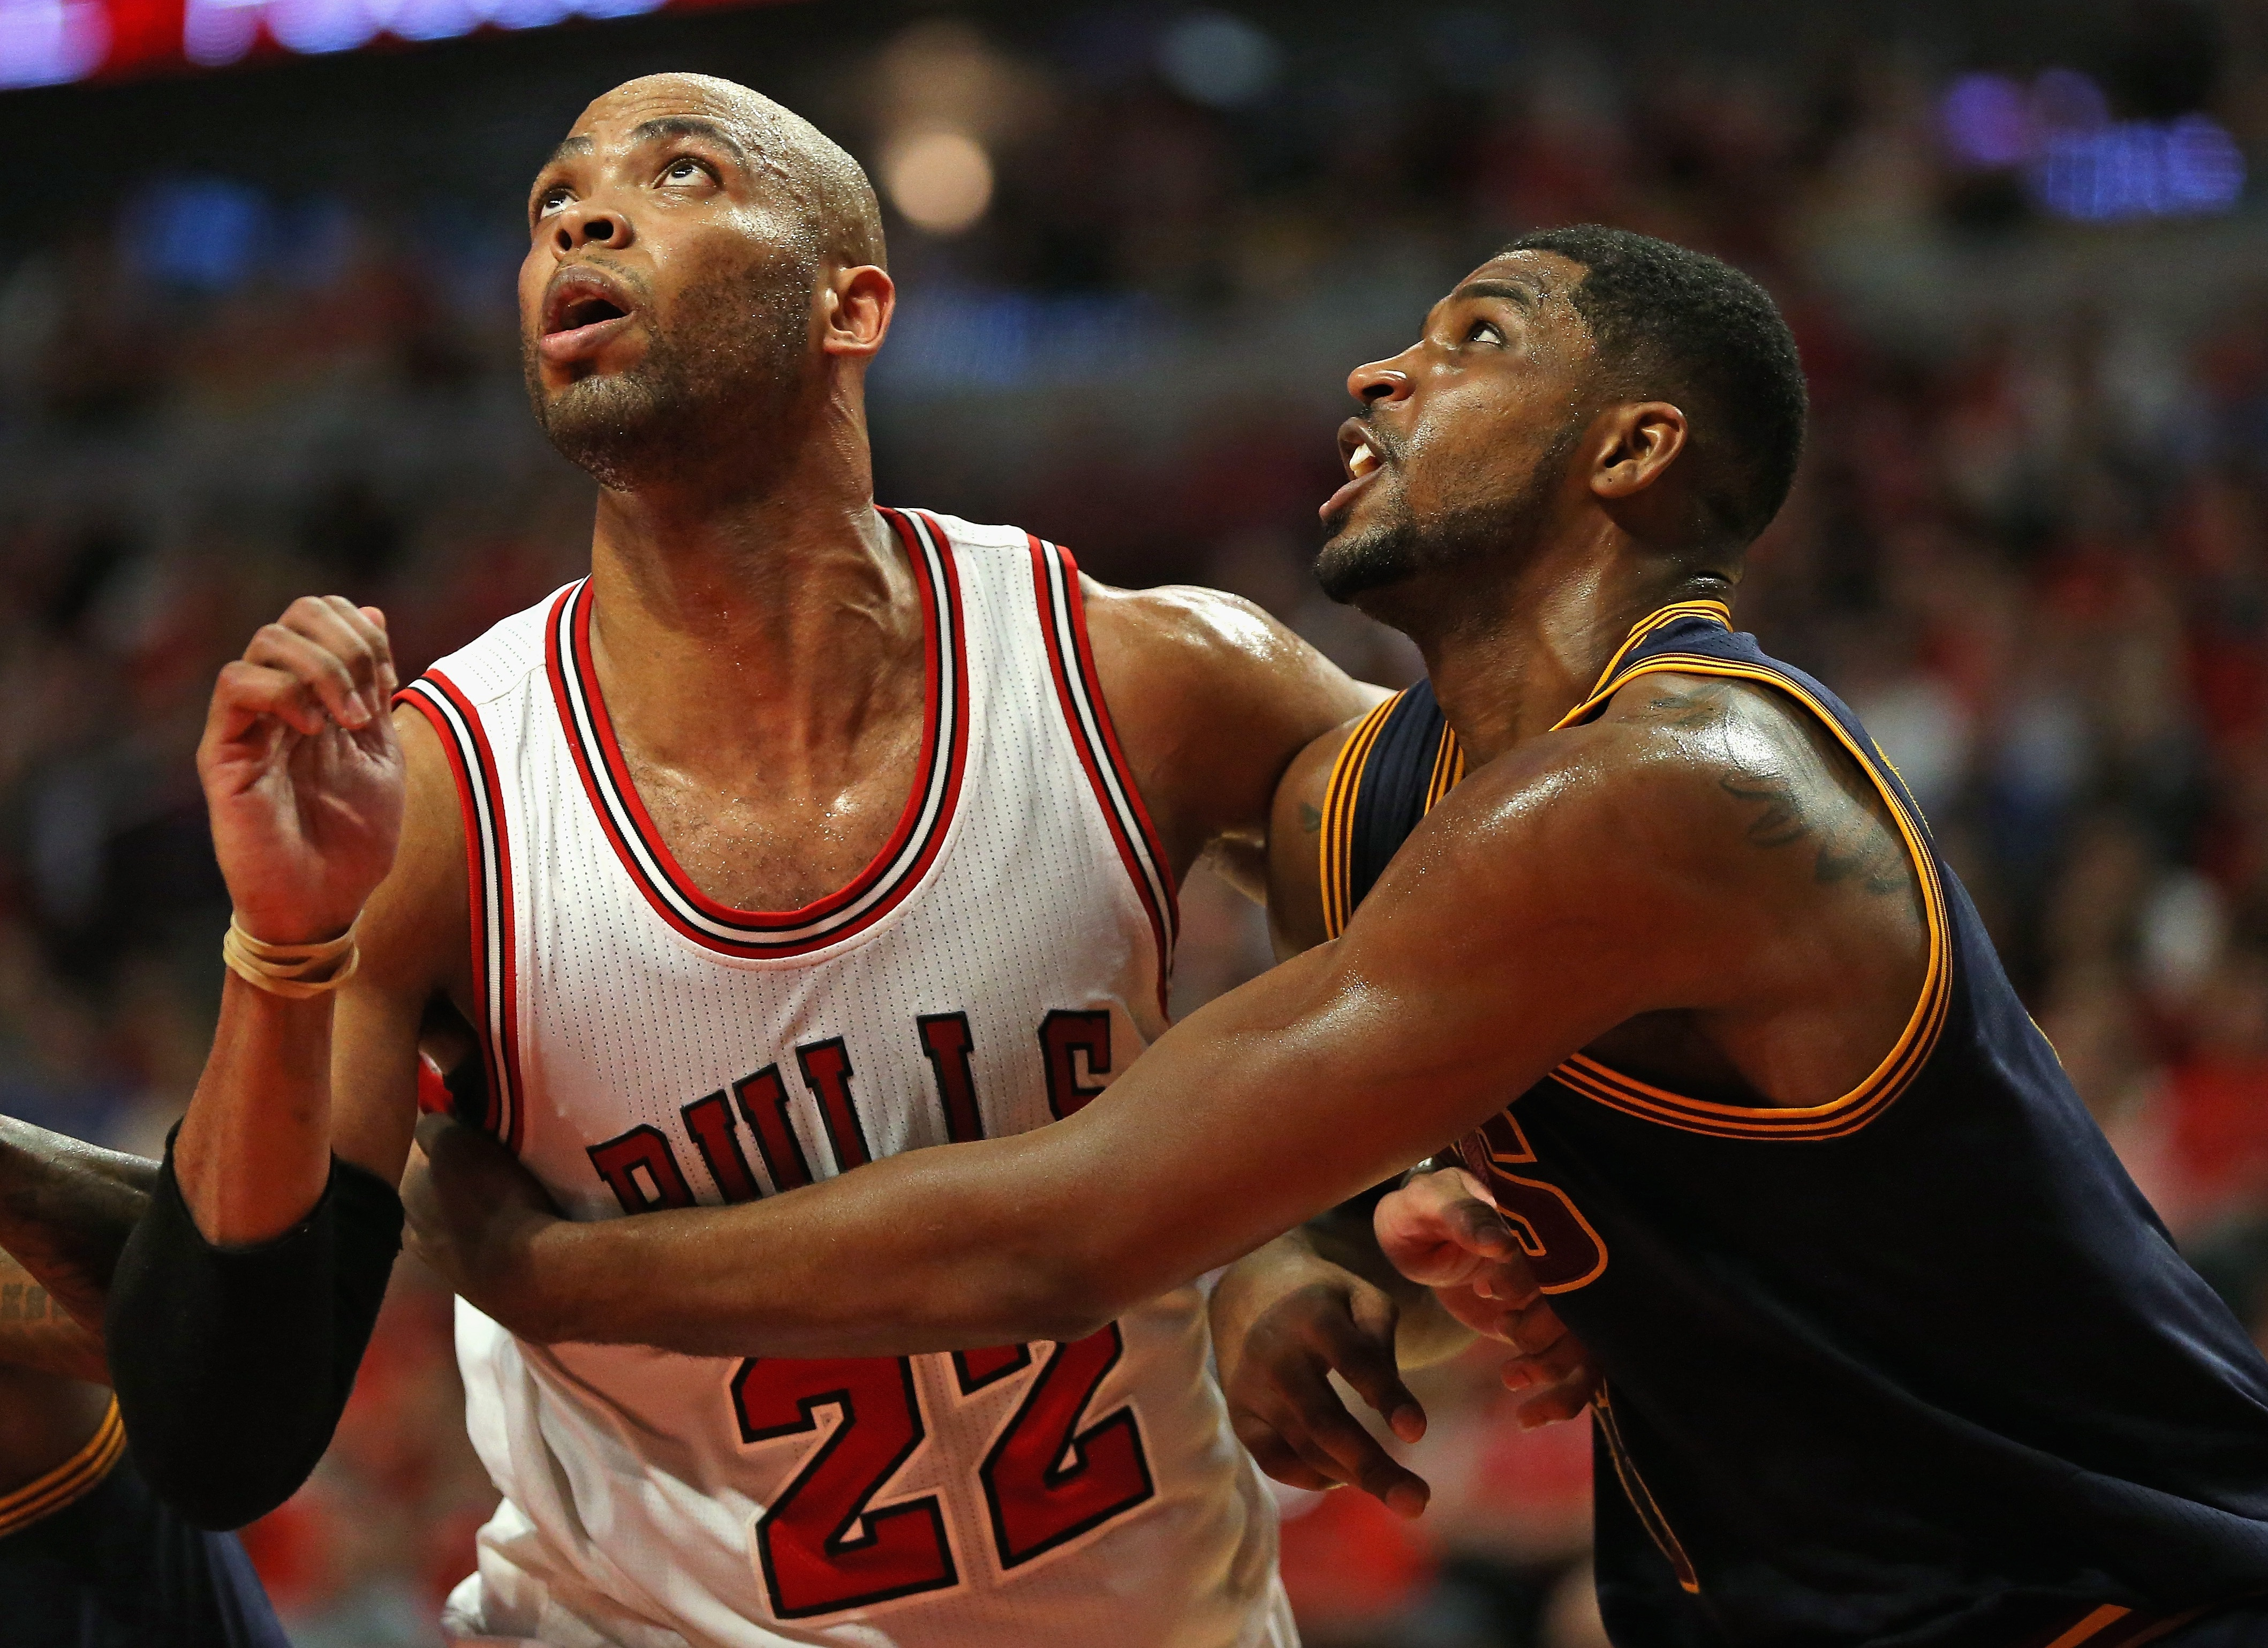 CHICAGO, IL - MAY 08: in Game Three of the Eastern Conference Semifinals of the 2015 NBA Playoffs at the United Center on May 8, 2015 in Chicago, Illinois. The Bulls defeated the Cavaliers 99-96. (Photo by Jonathan Daniel/Getty Images)